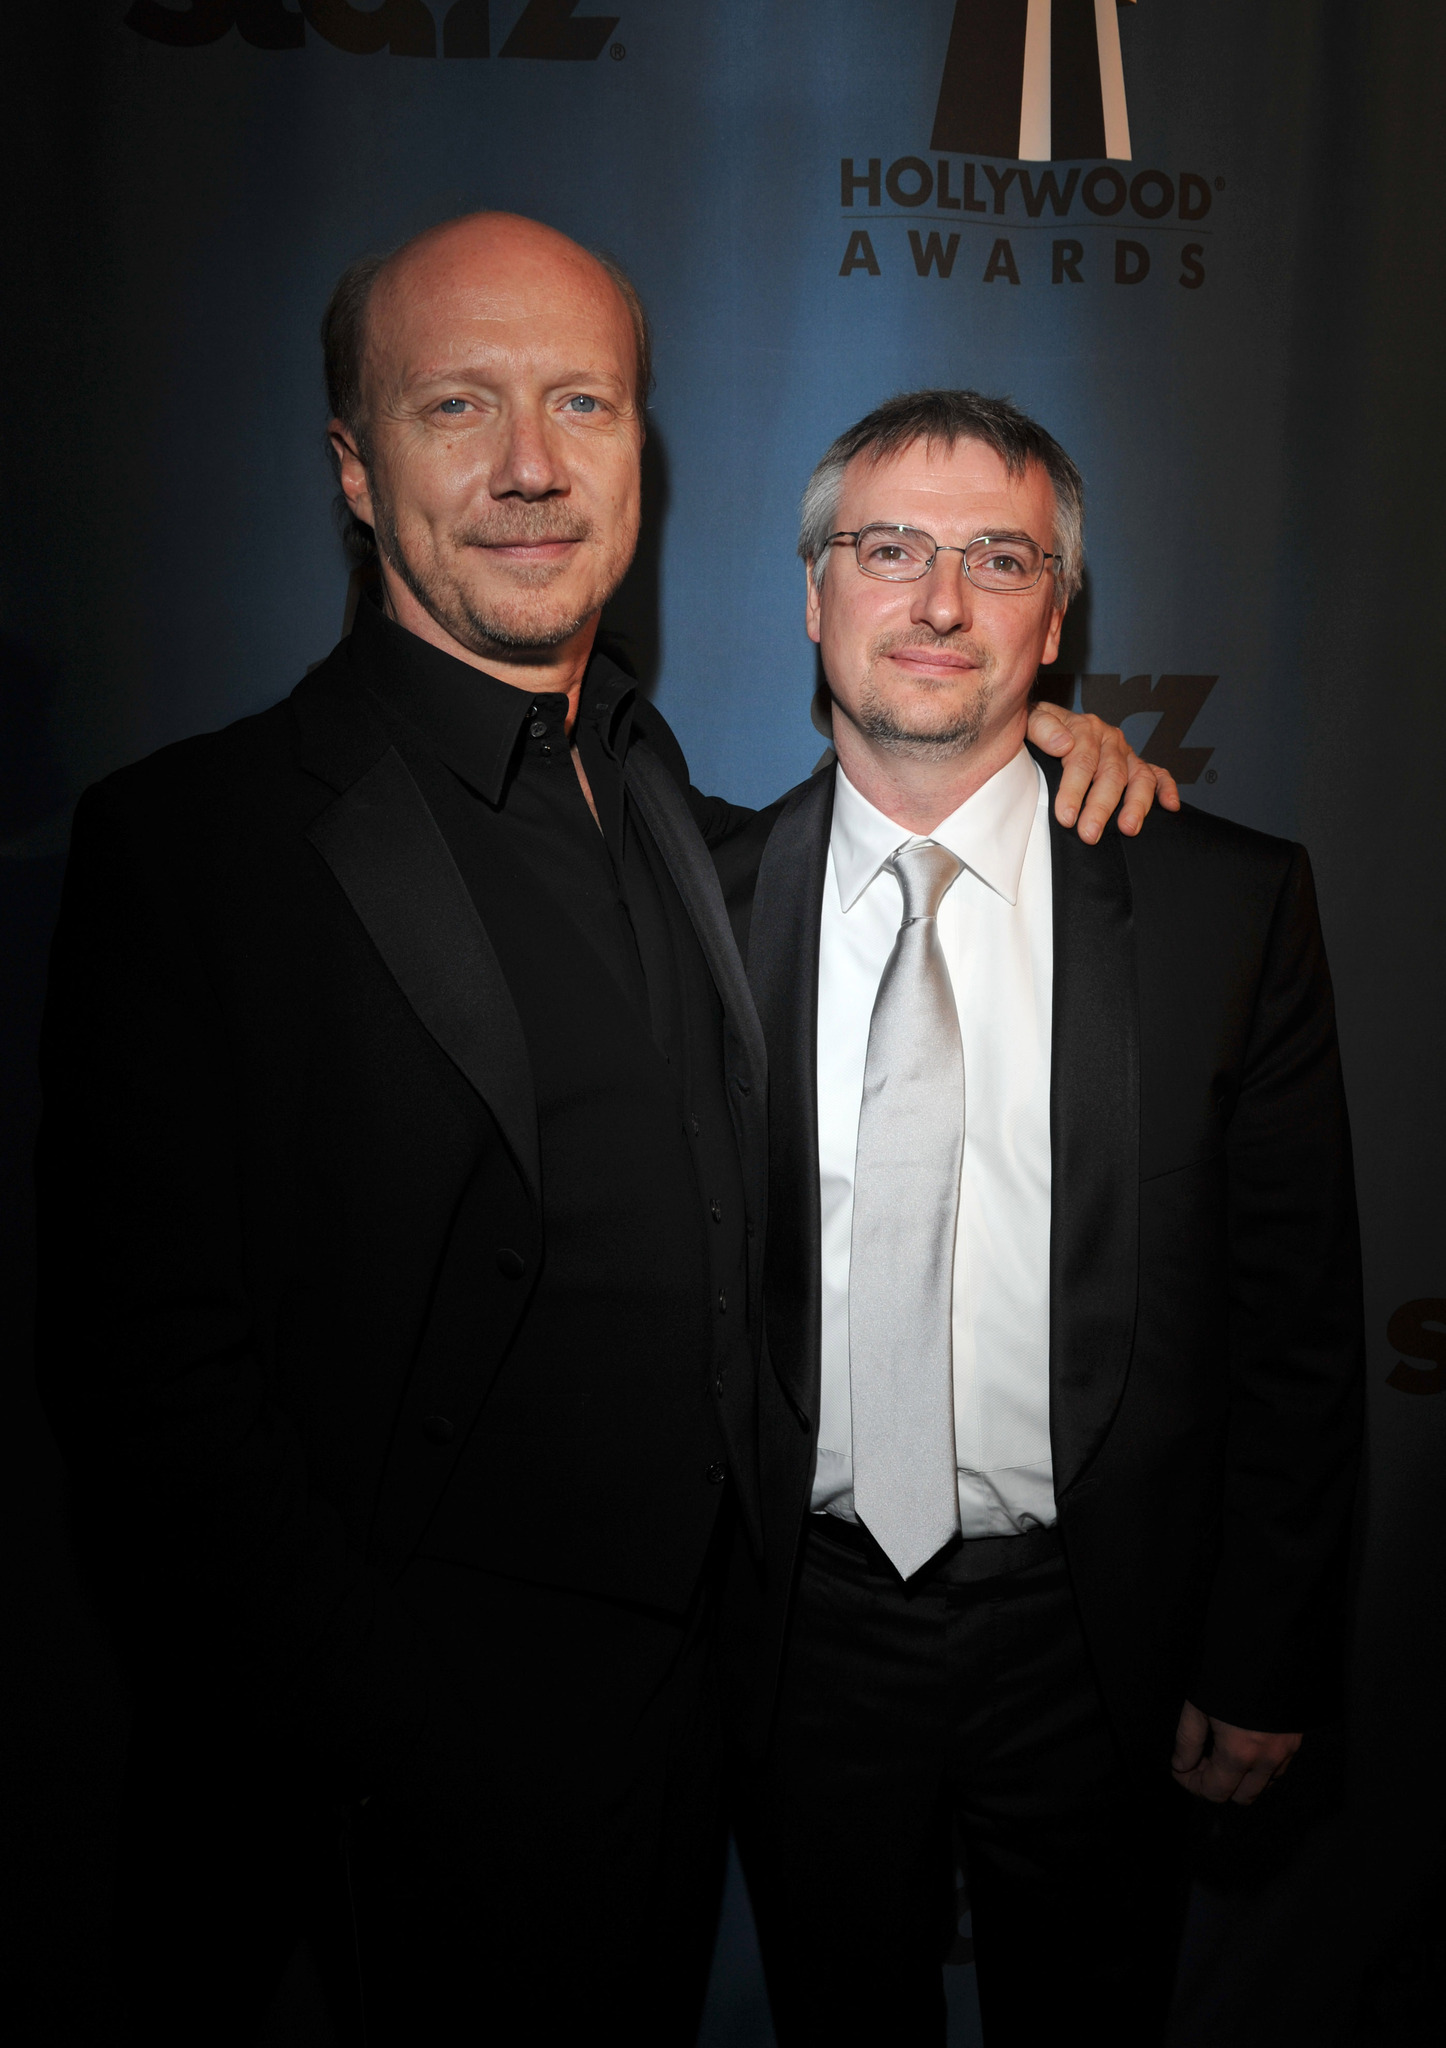 Paul Haggis and Glen Mazzara